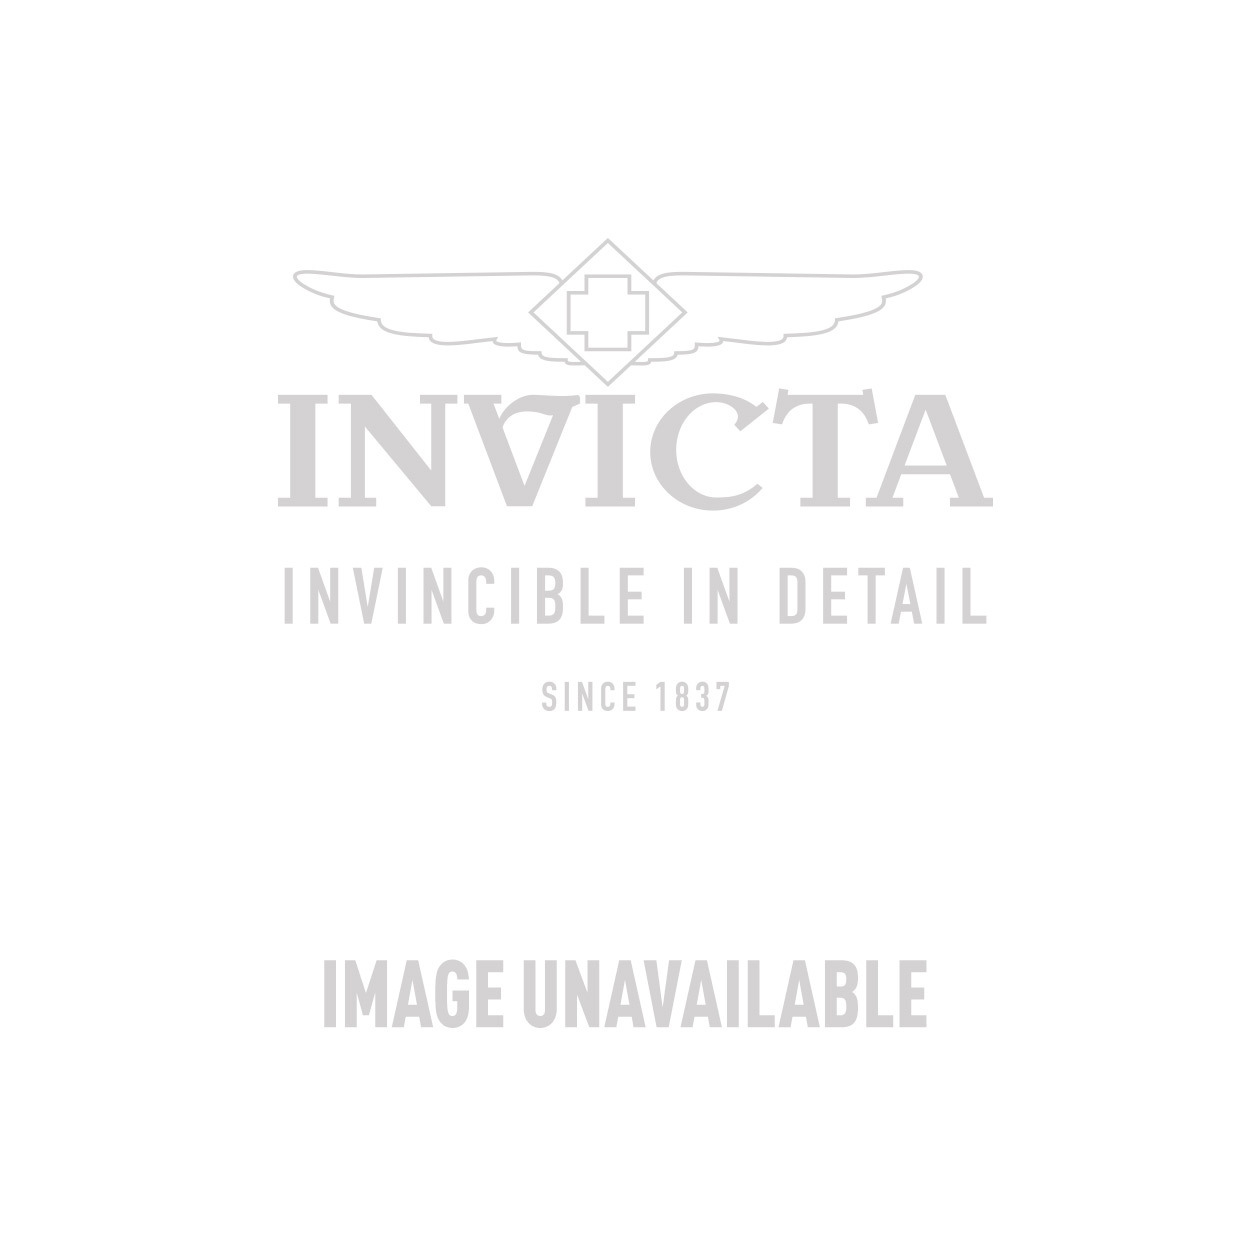 Invicta Excursion Swiss Made Quartz Watch - Gold case with Gold tone Stainless Steel band - Model 6247